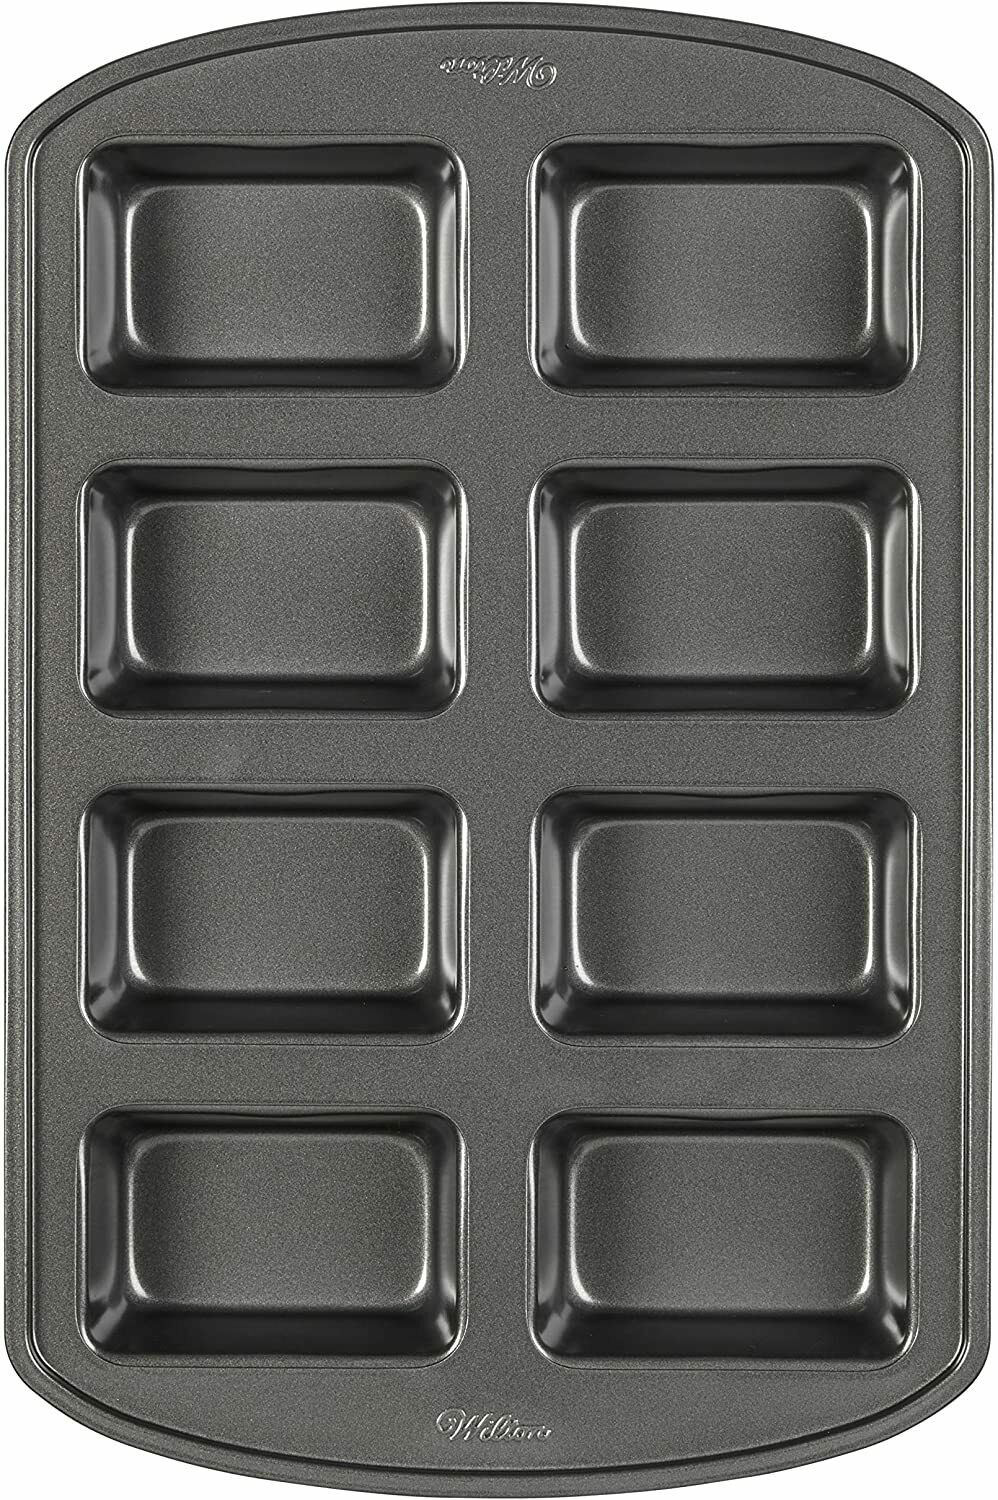 Wilton Perfect Results Non-Stick Mini Loaf Pan; 8-Cavity Quality Baking Pan - New